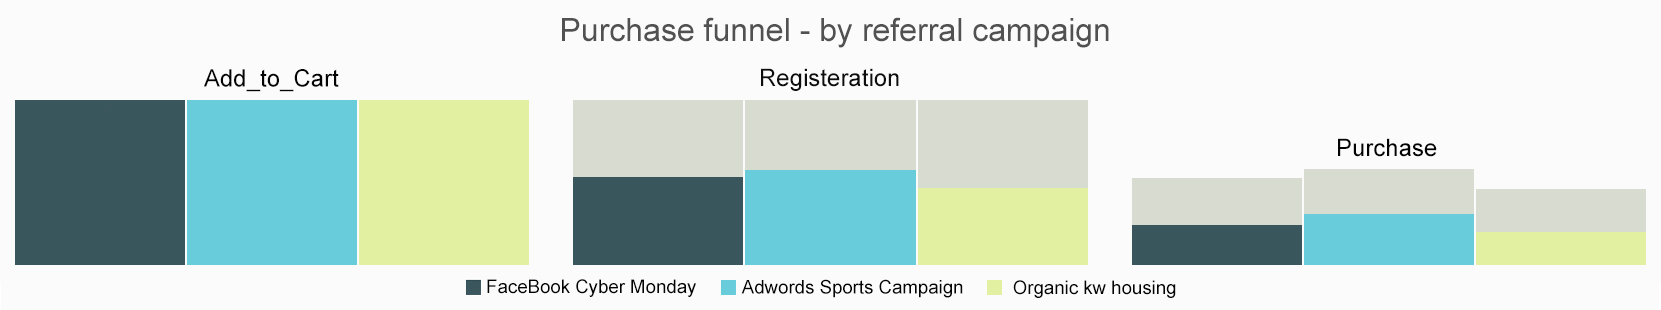 Cooladata_ecommerce Funnel by referral campaign (3)